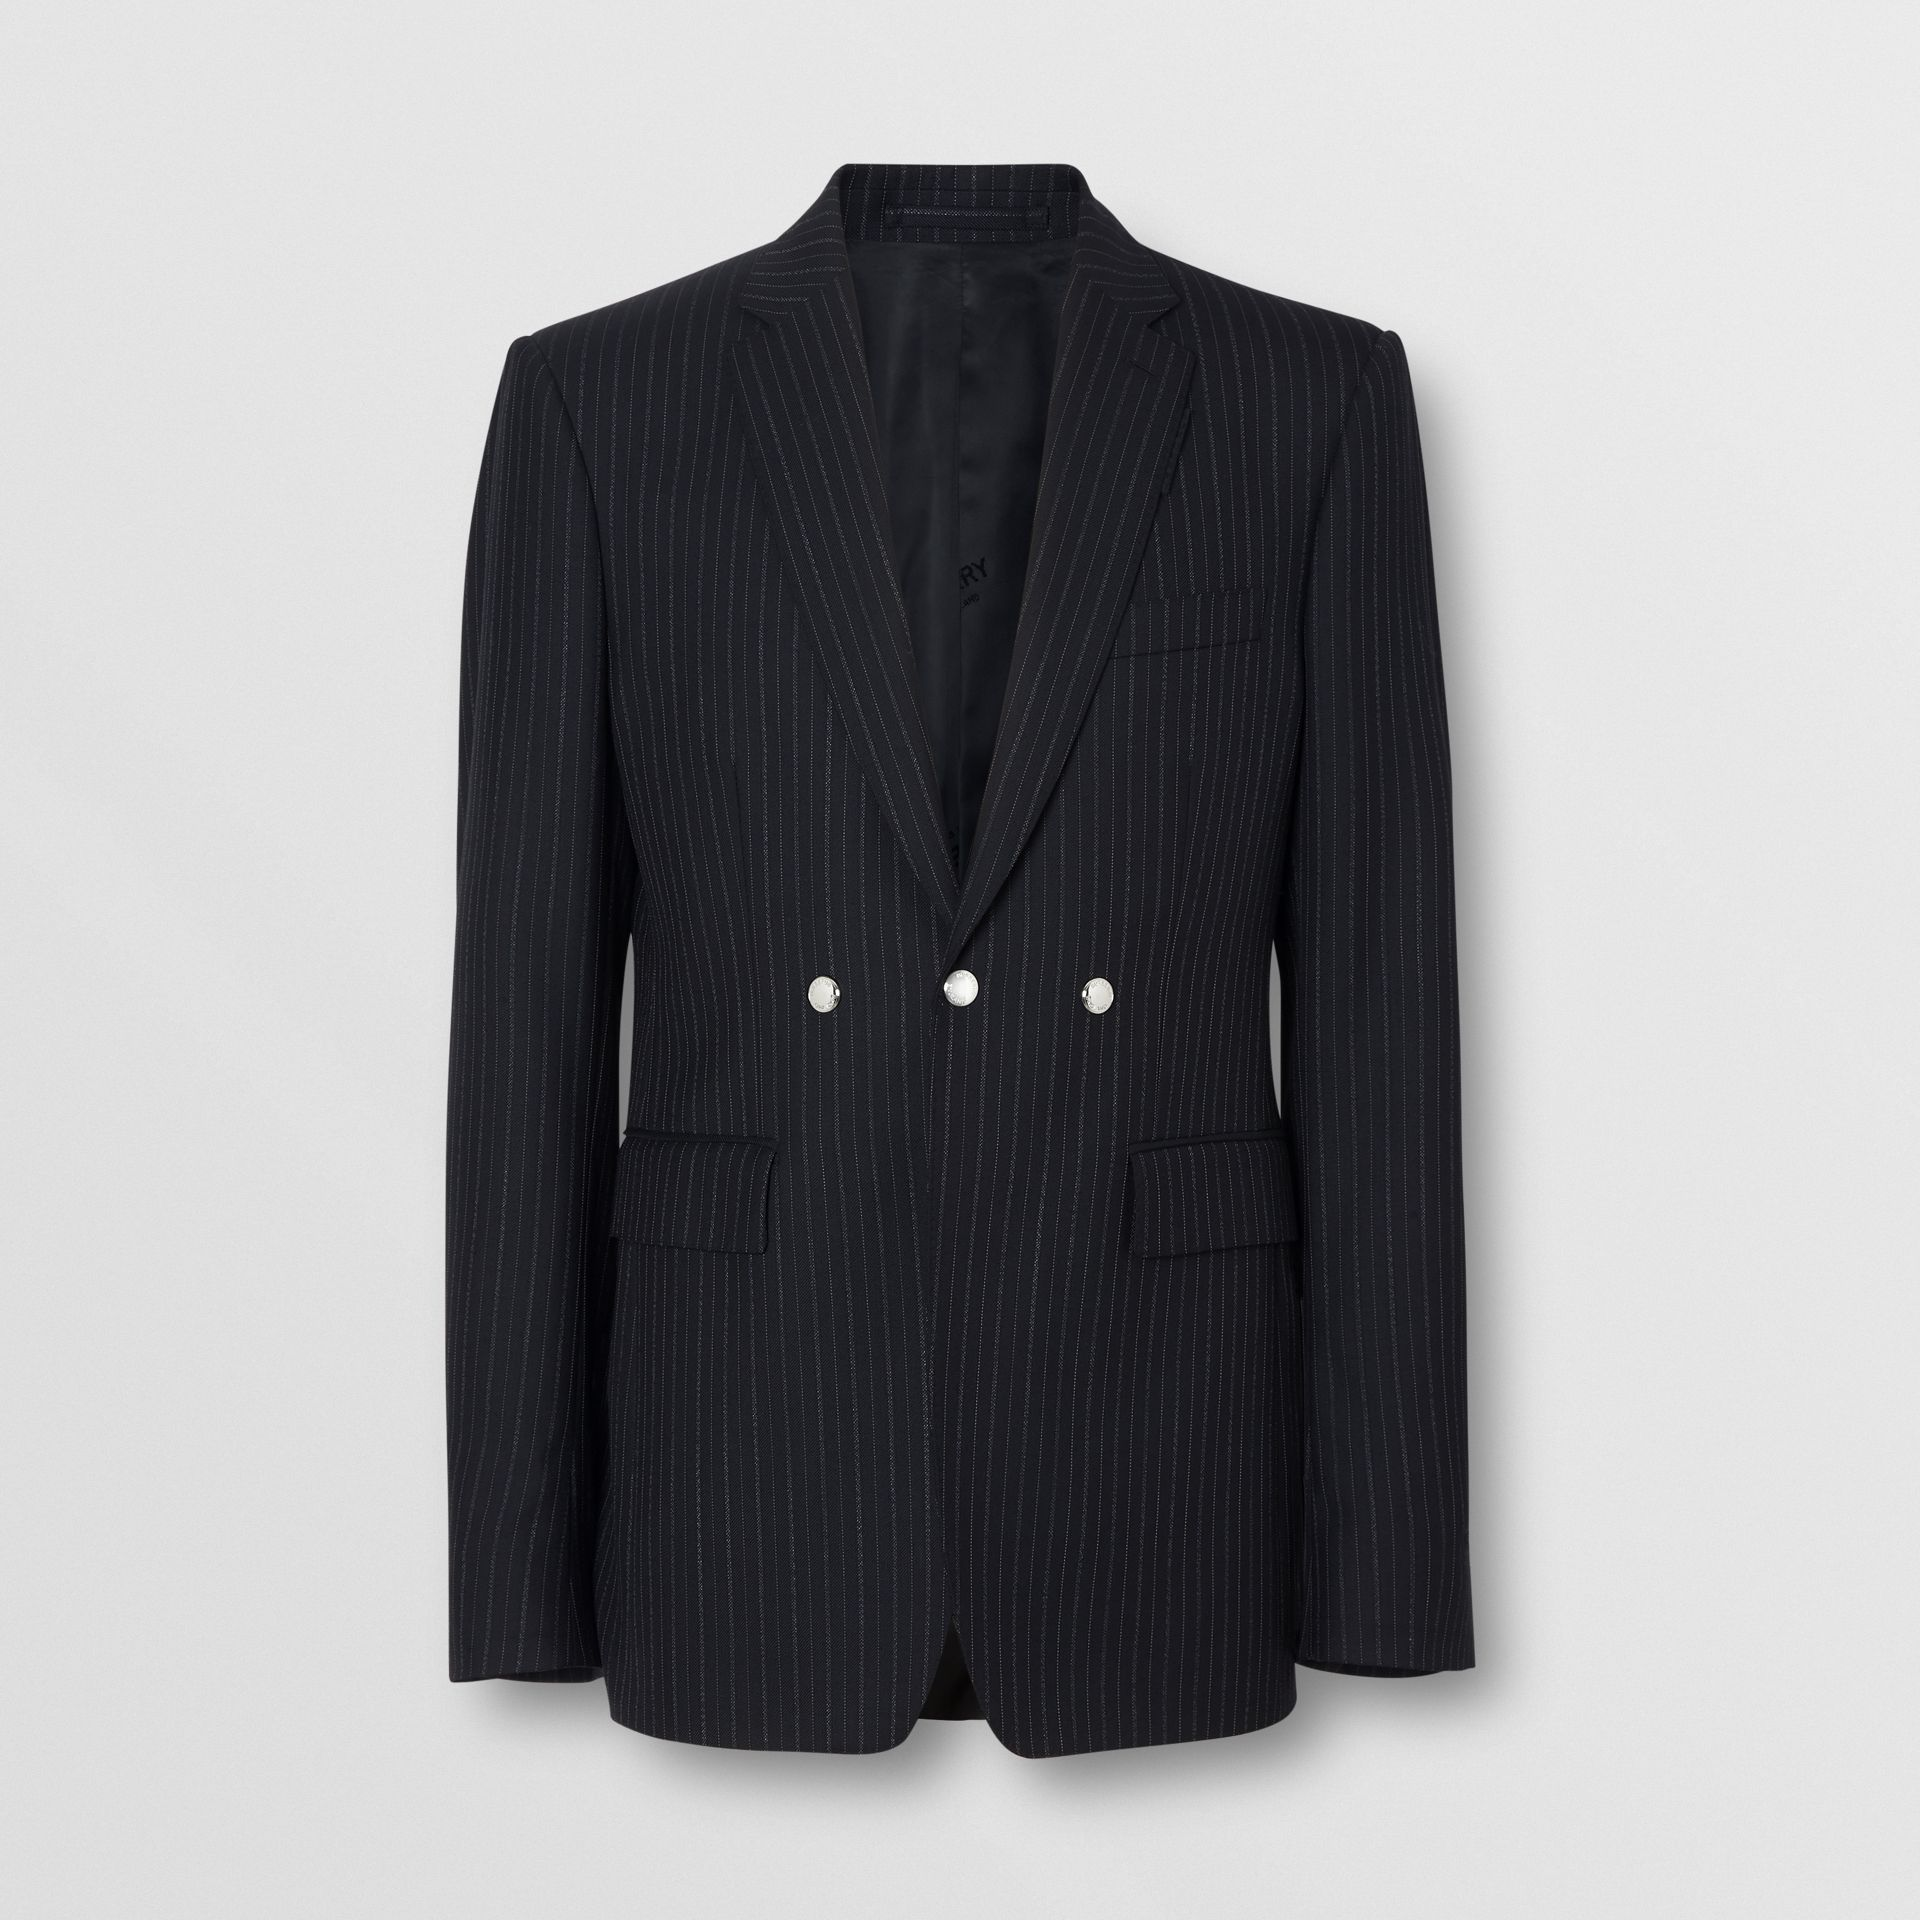 English Fit Triple Stud Pinstriped Wool Tailored Jacket in Black - Men | Burberry Canada - gallery image 3